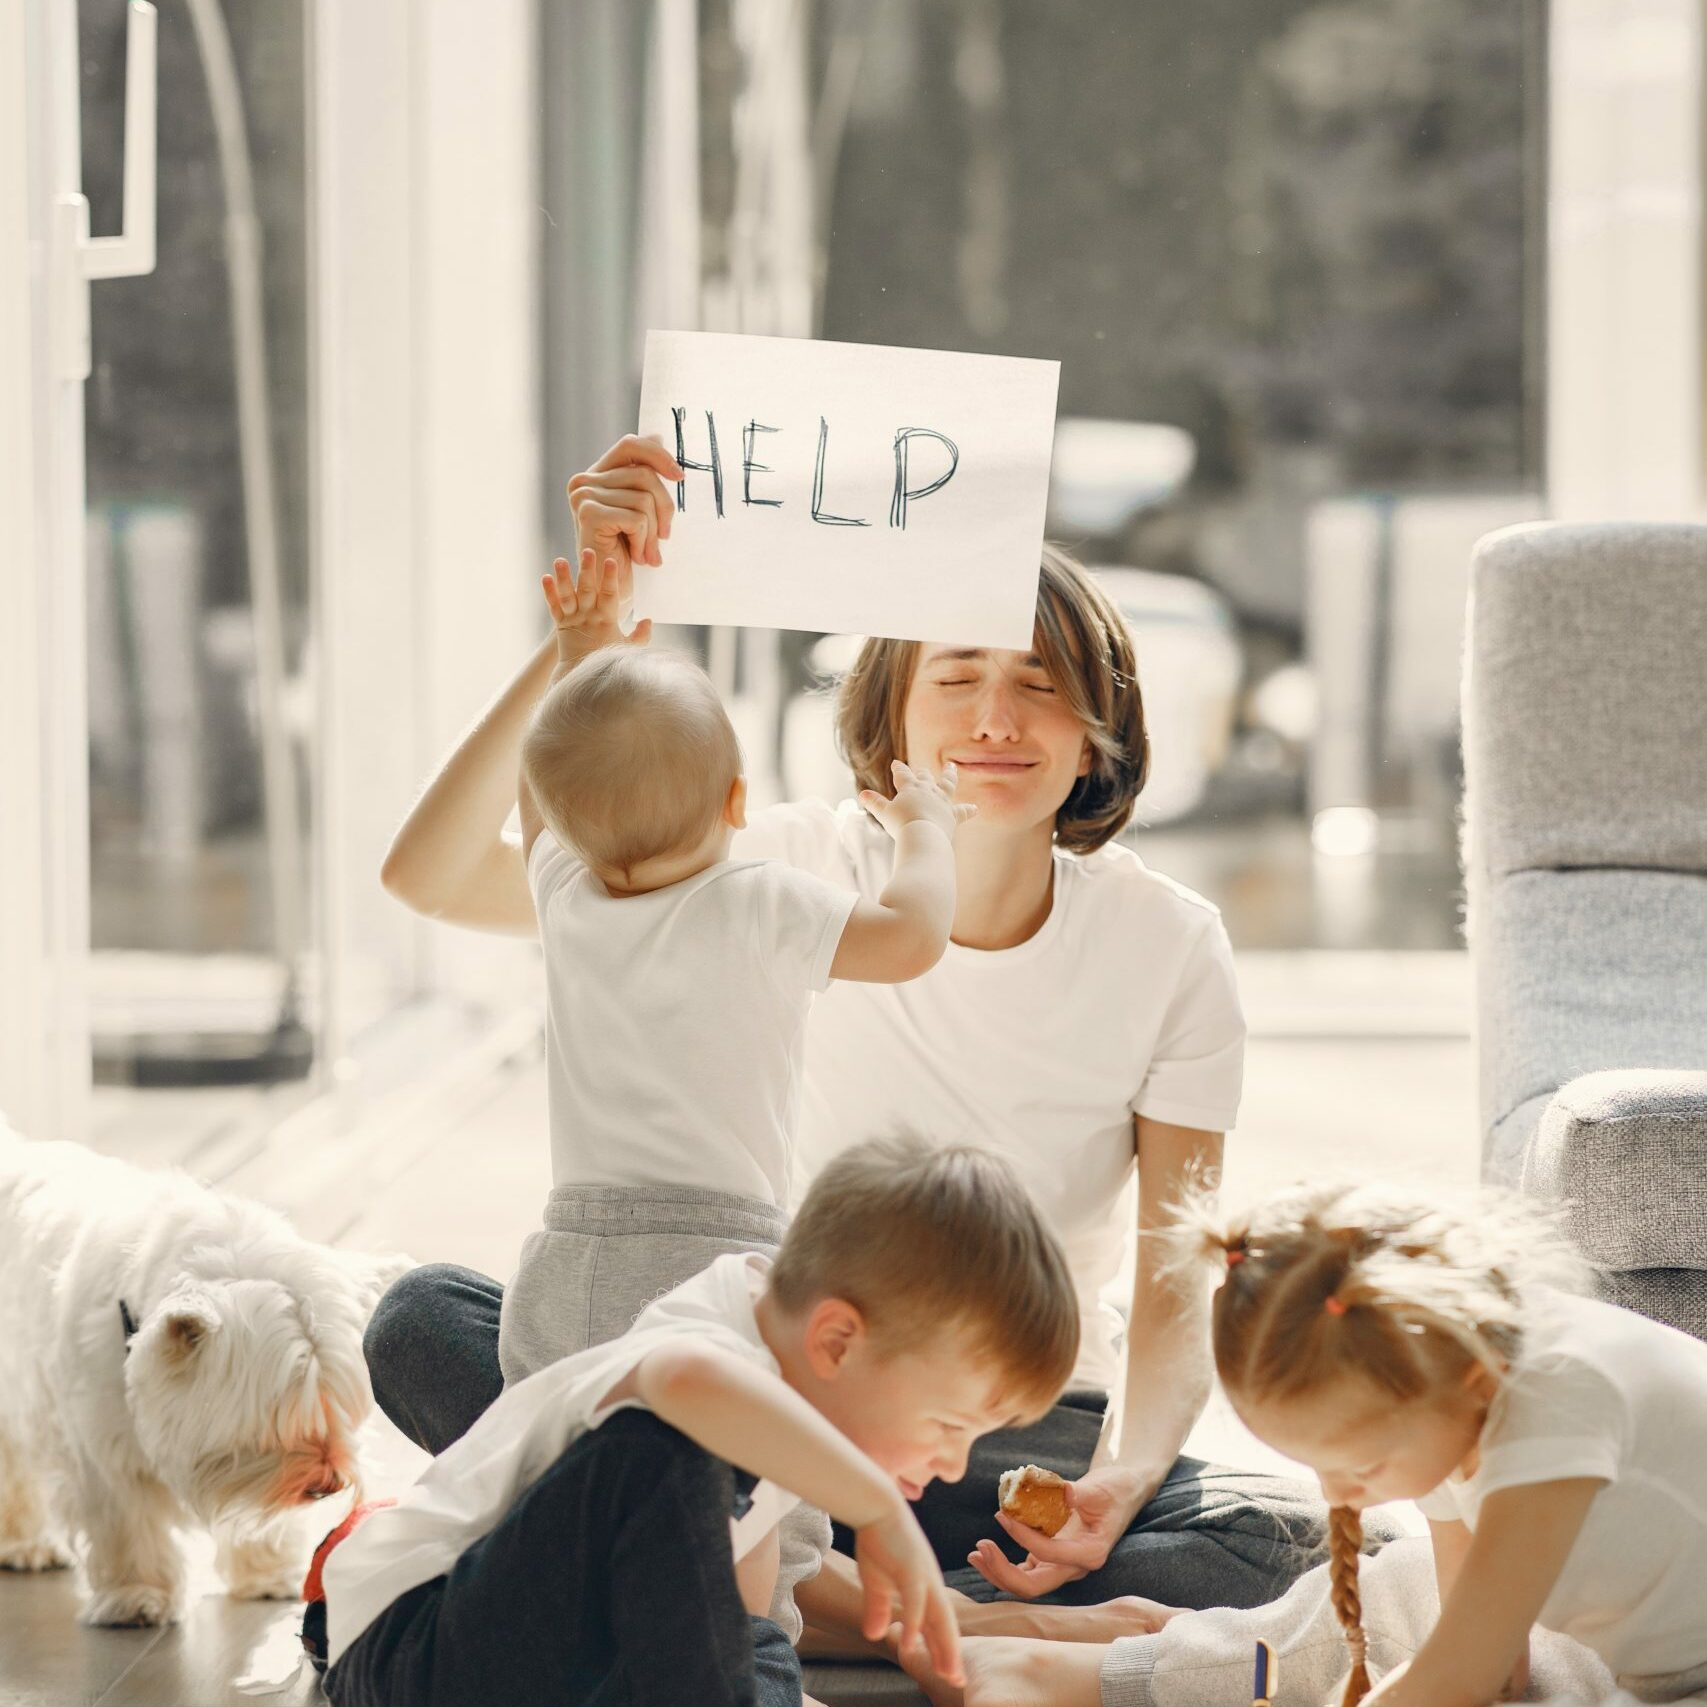 tired-mother-kidding-while-sitting-with-children-4017413